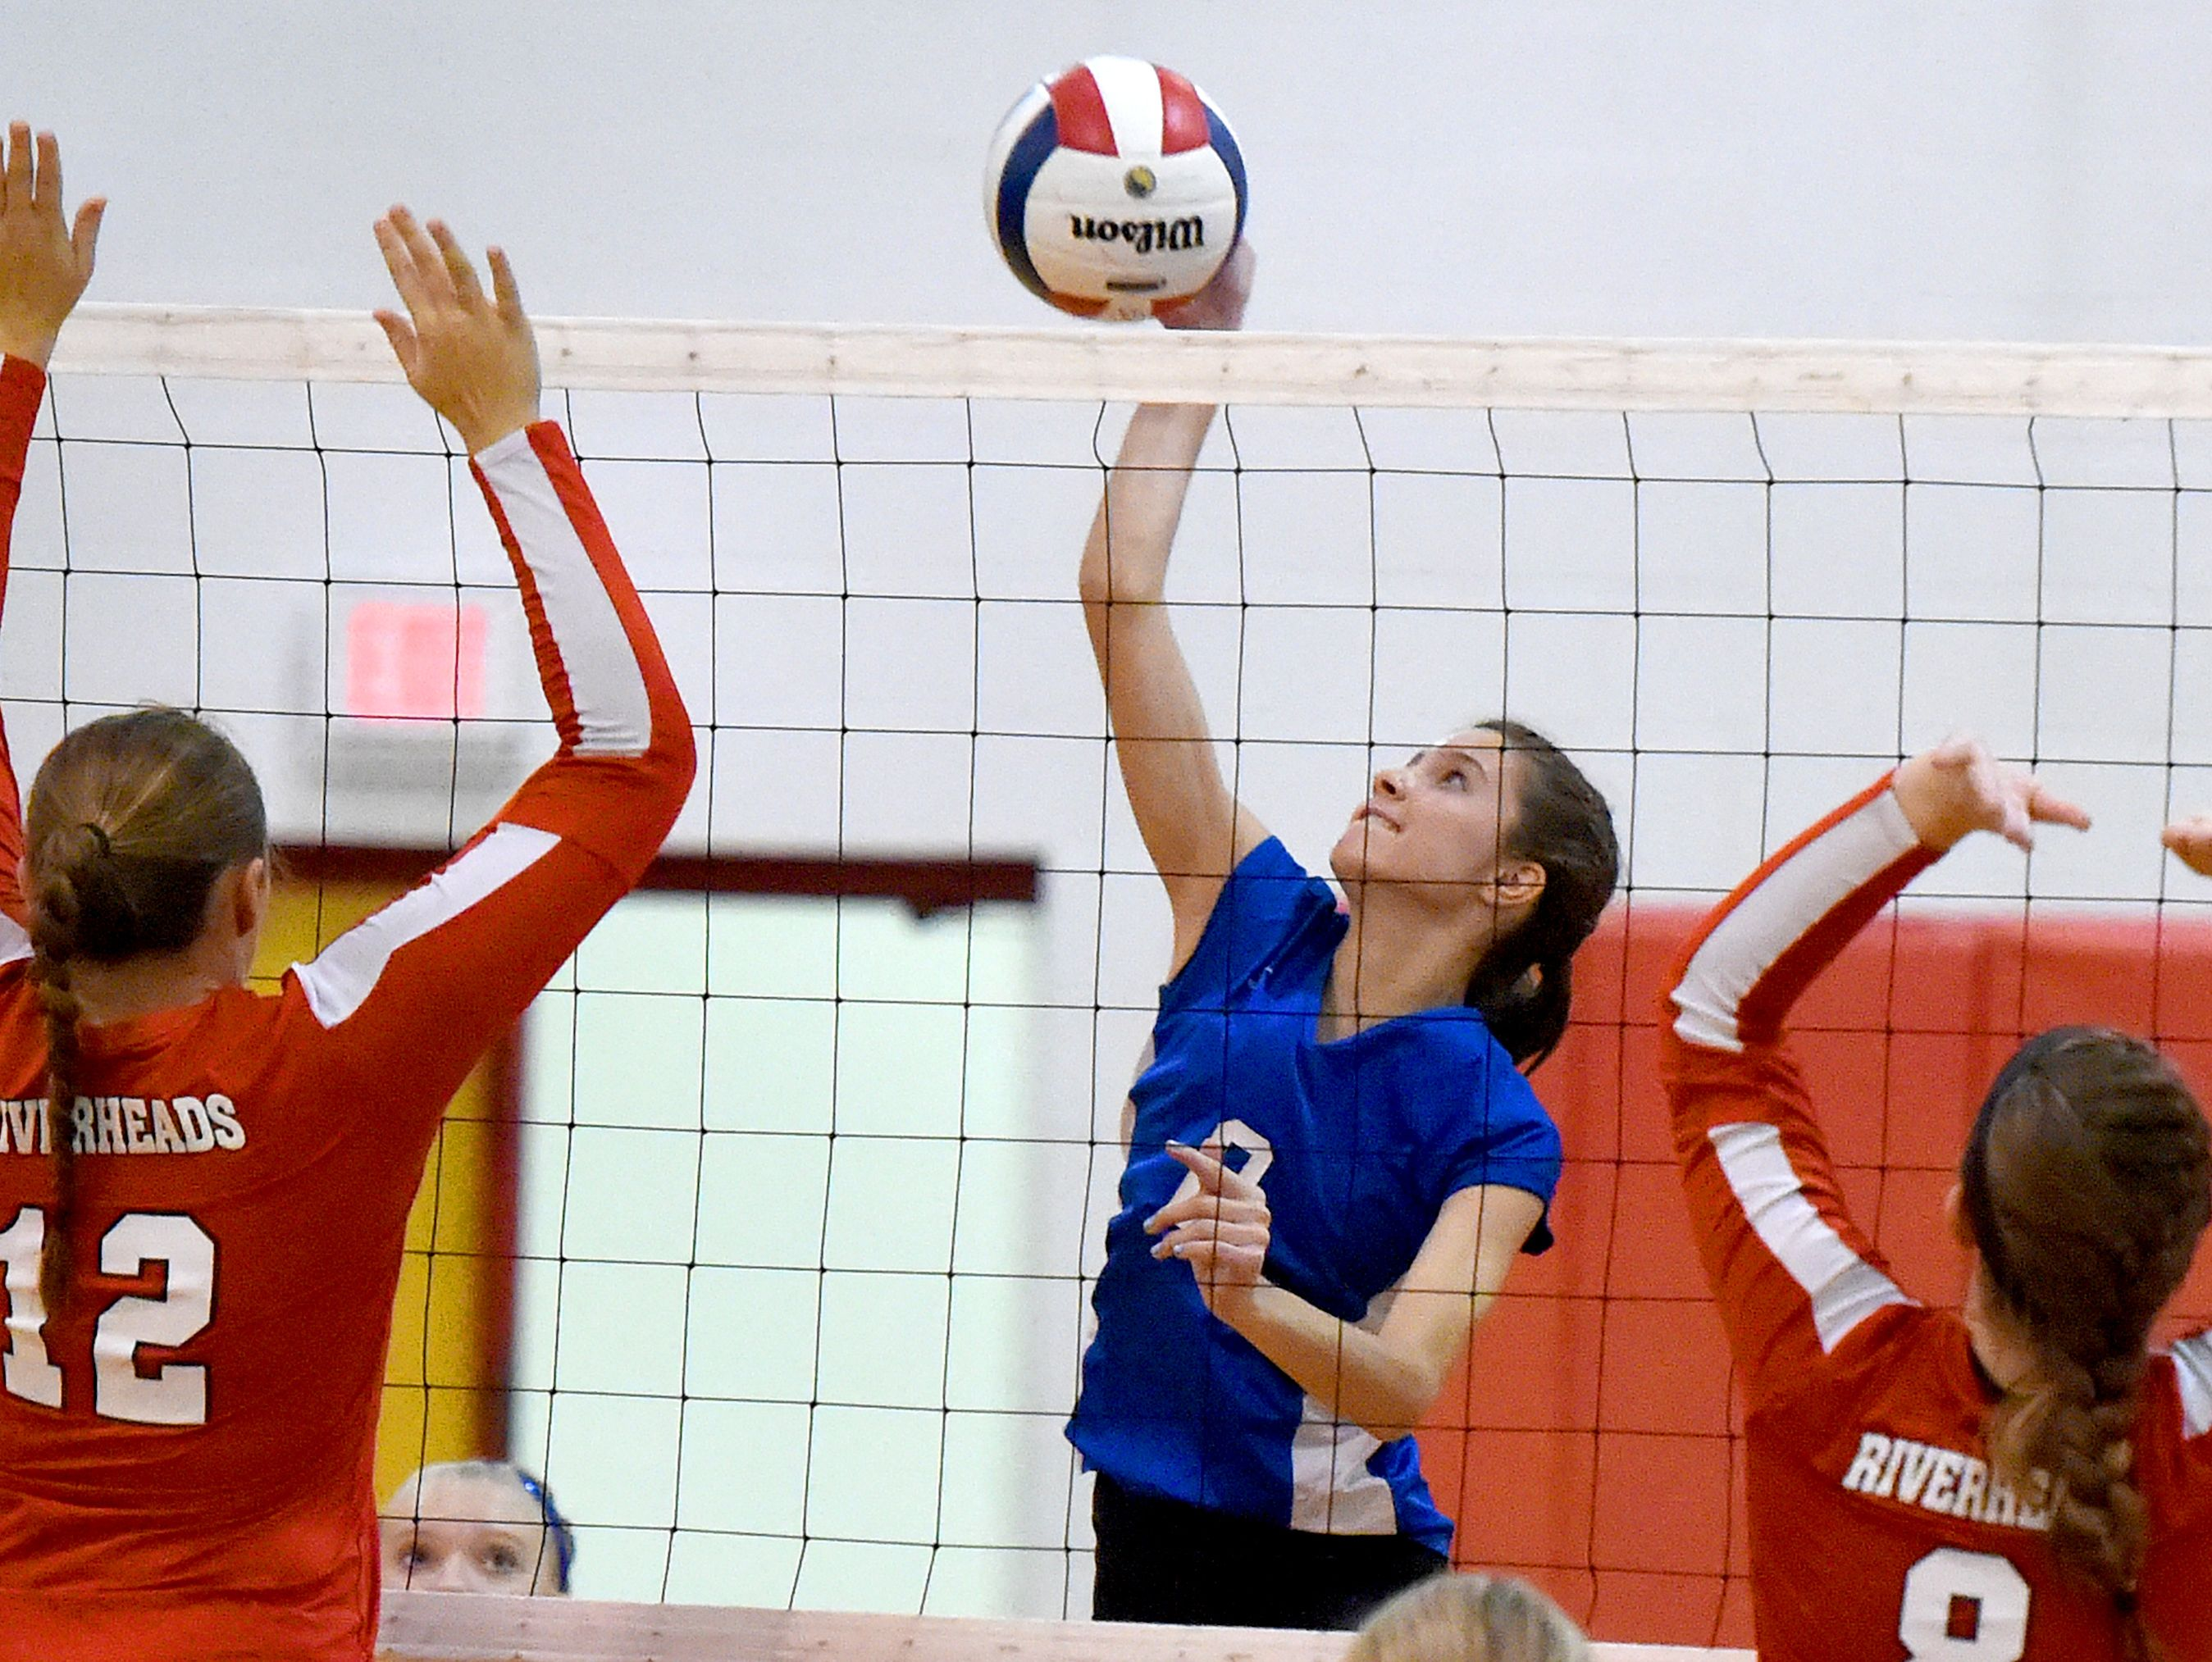 Fort Defiance's Casey Mozingo spikes the ball during a volleyball match played in Greenville on Thursday, Sept. 9, 2016.